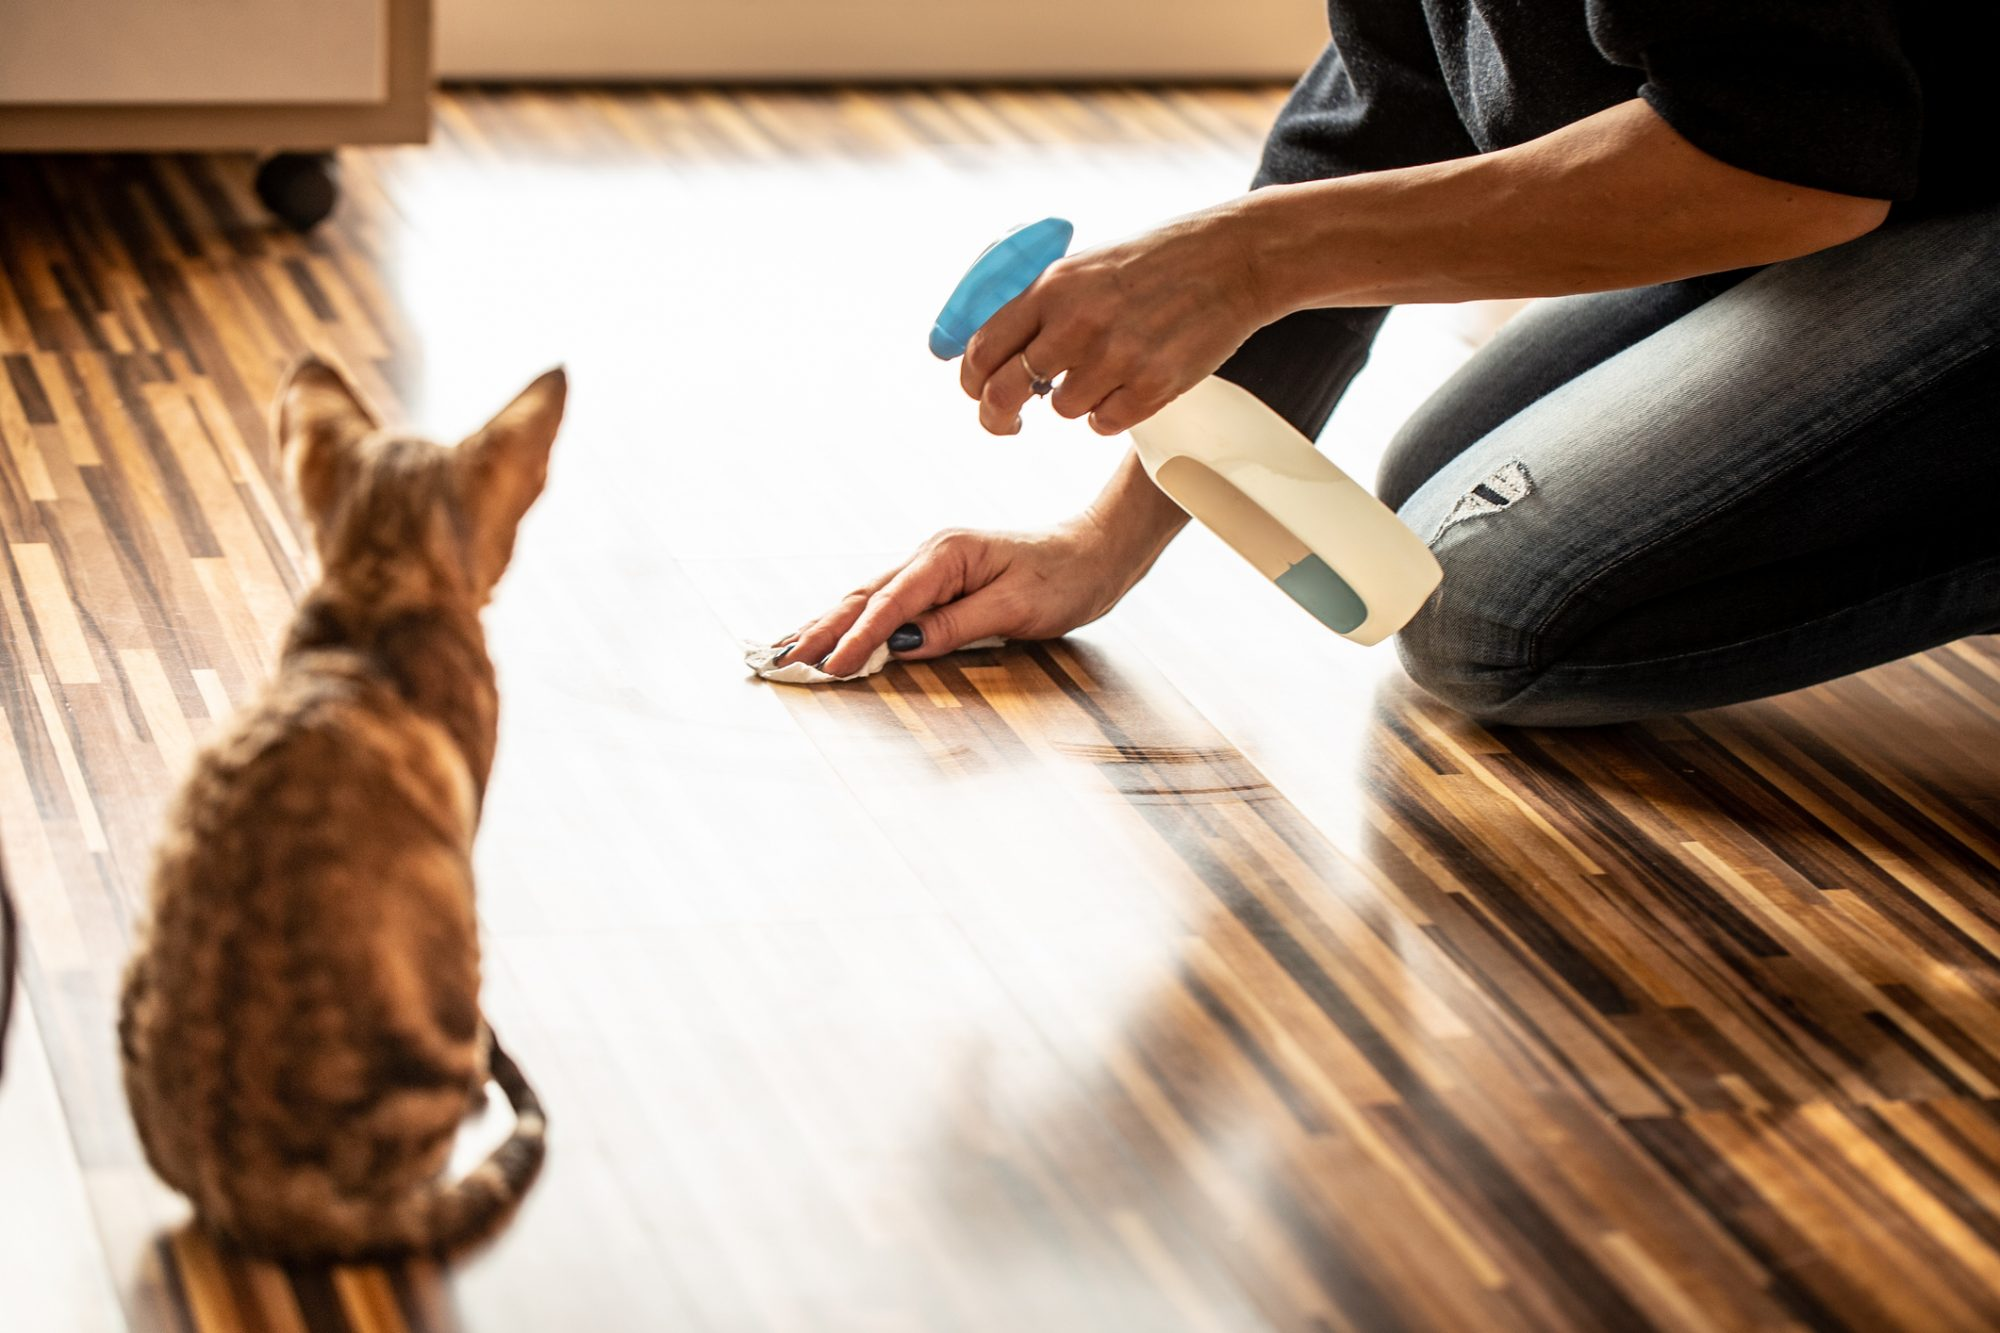 Cat owner cleaning floor as cat watches.